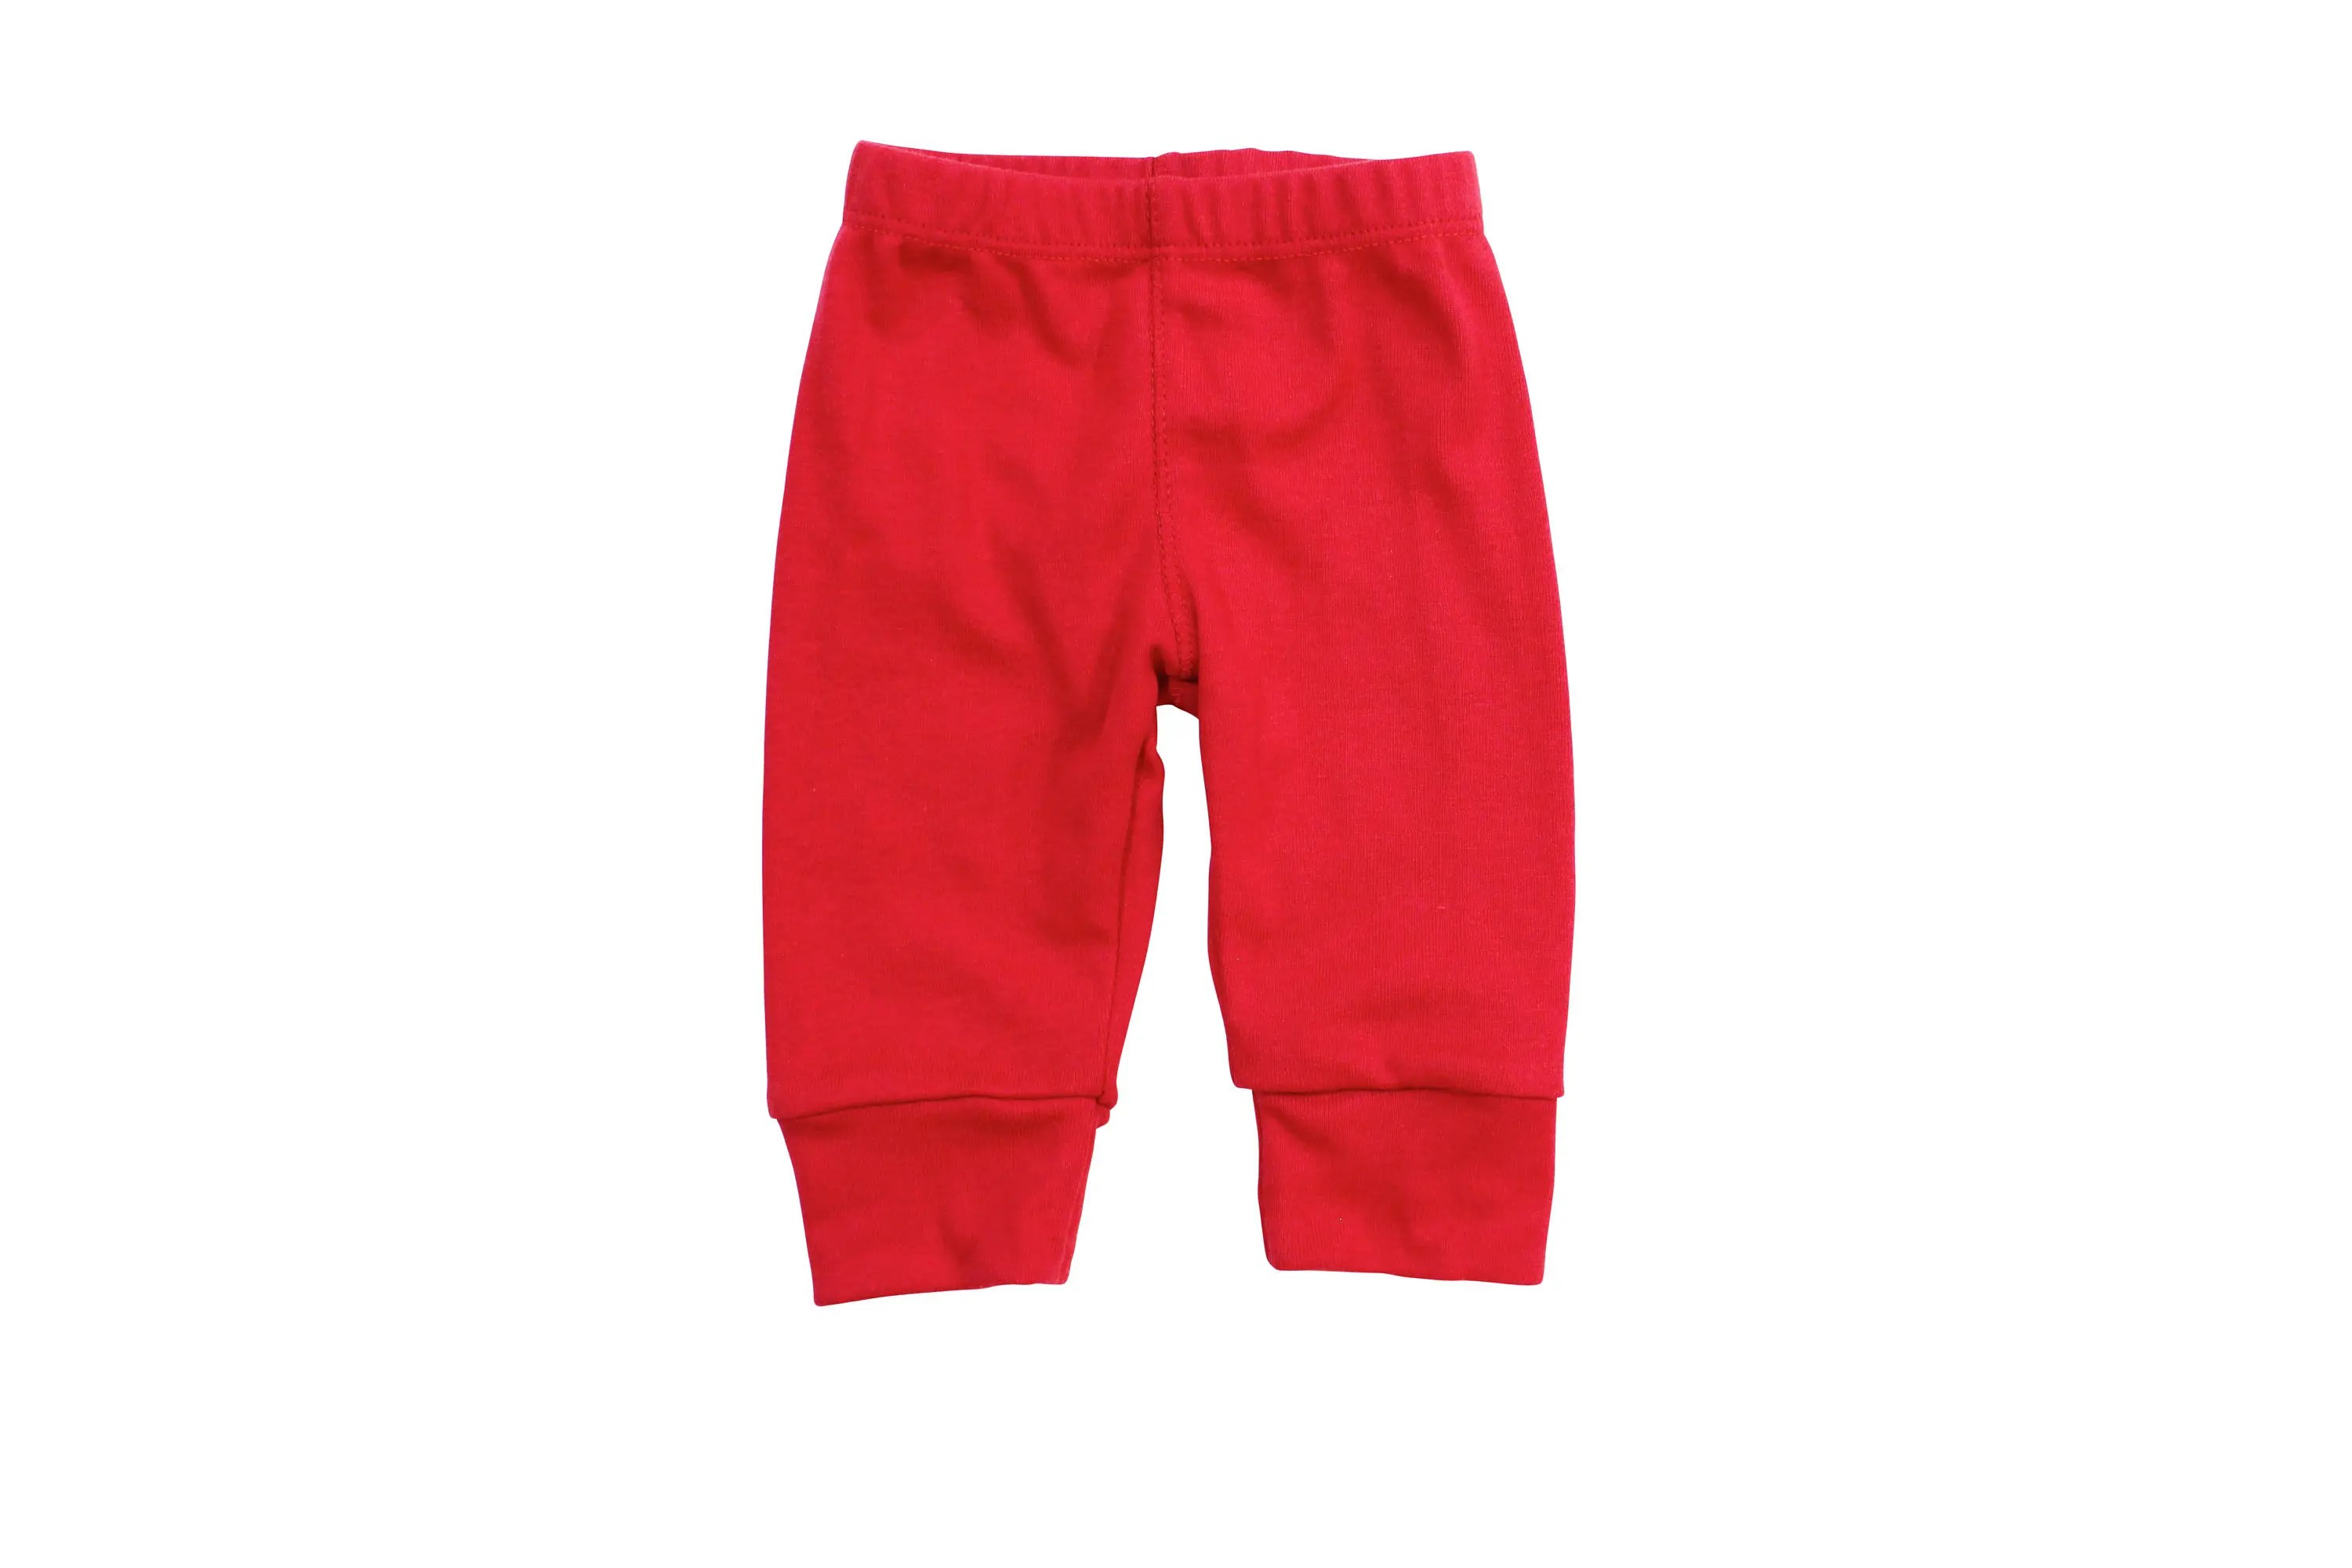 Red Baby Pants Baby Boy Pants Knit Leggings Red Christmas